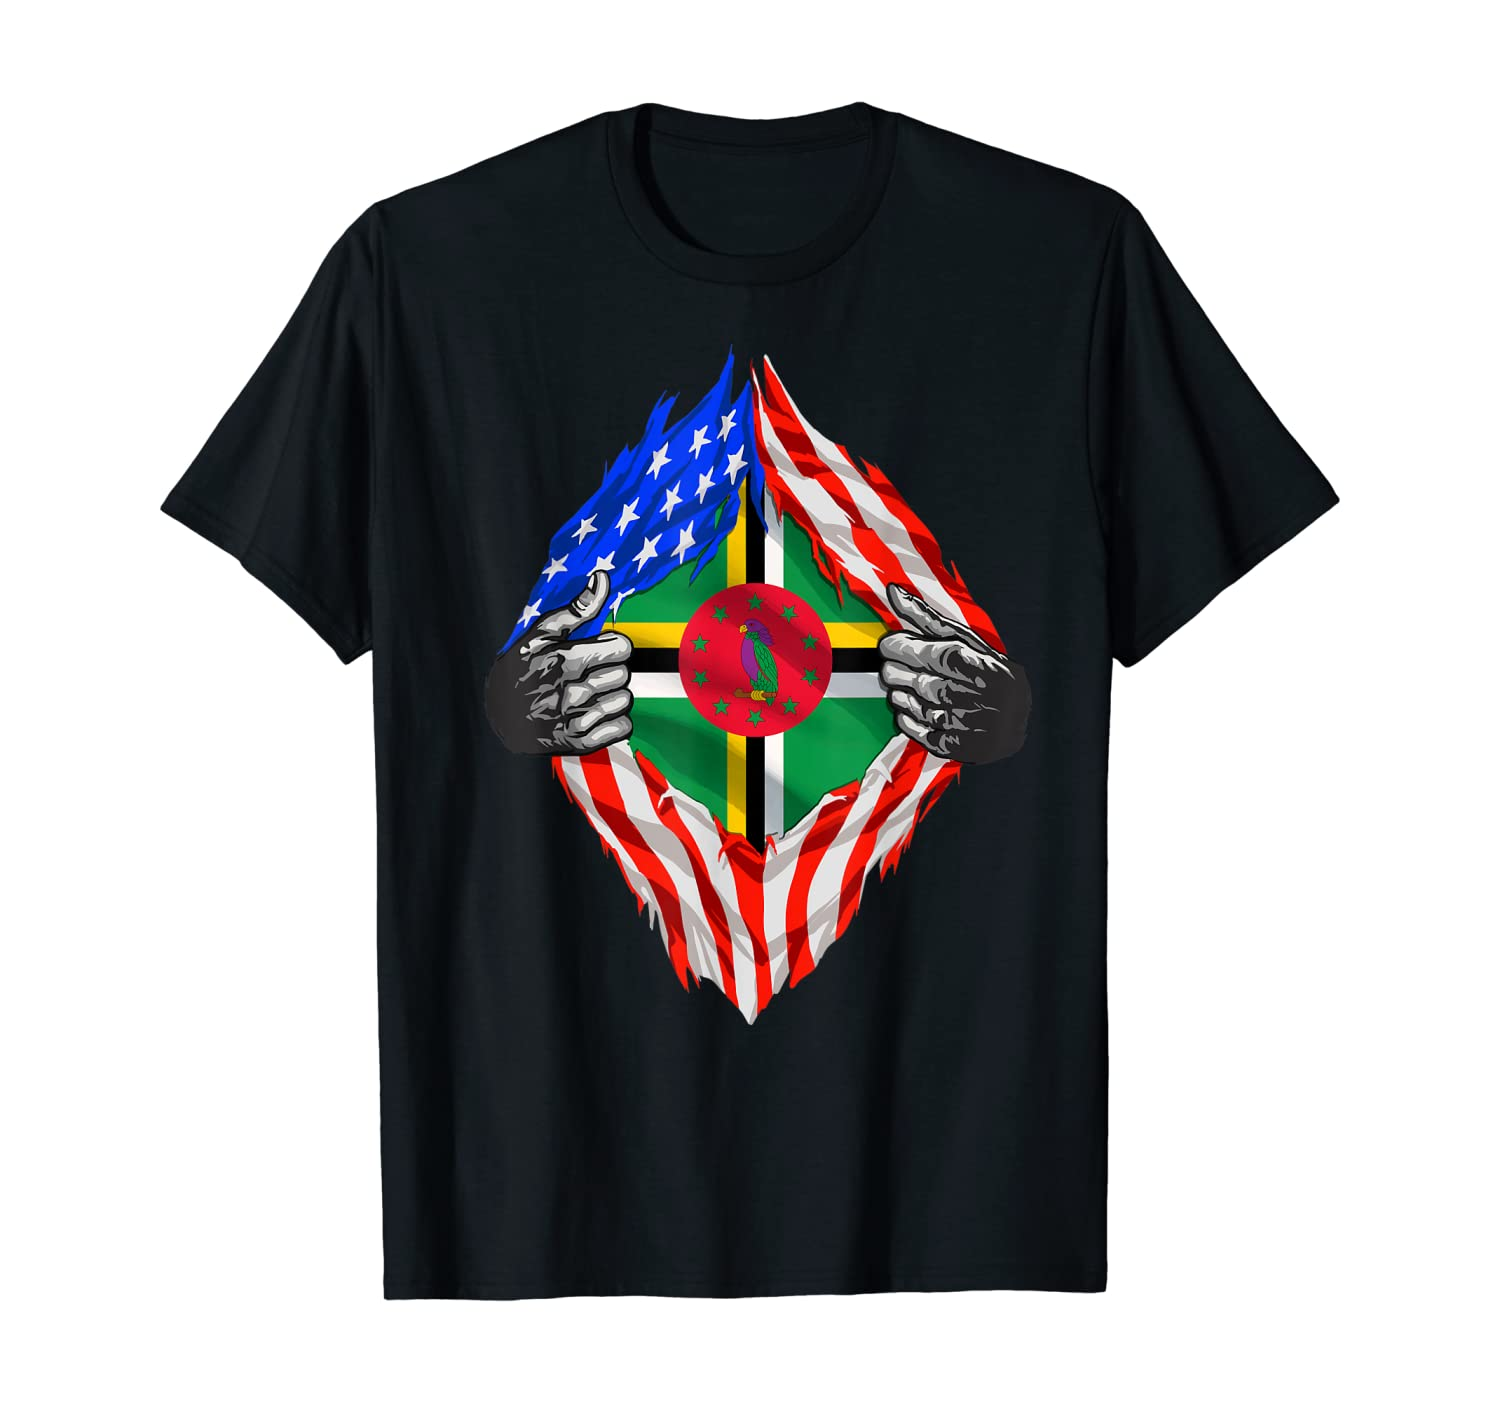 Super Dominician Heritage Dominica Roots USA Flag Gift T-Shirt